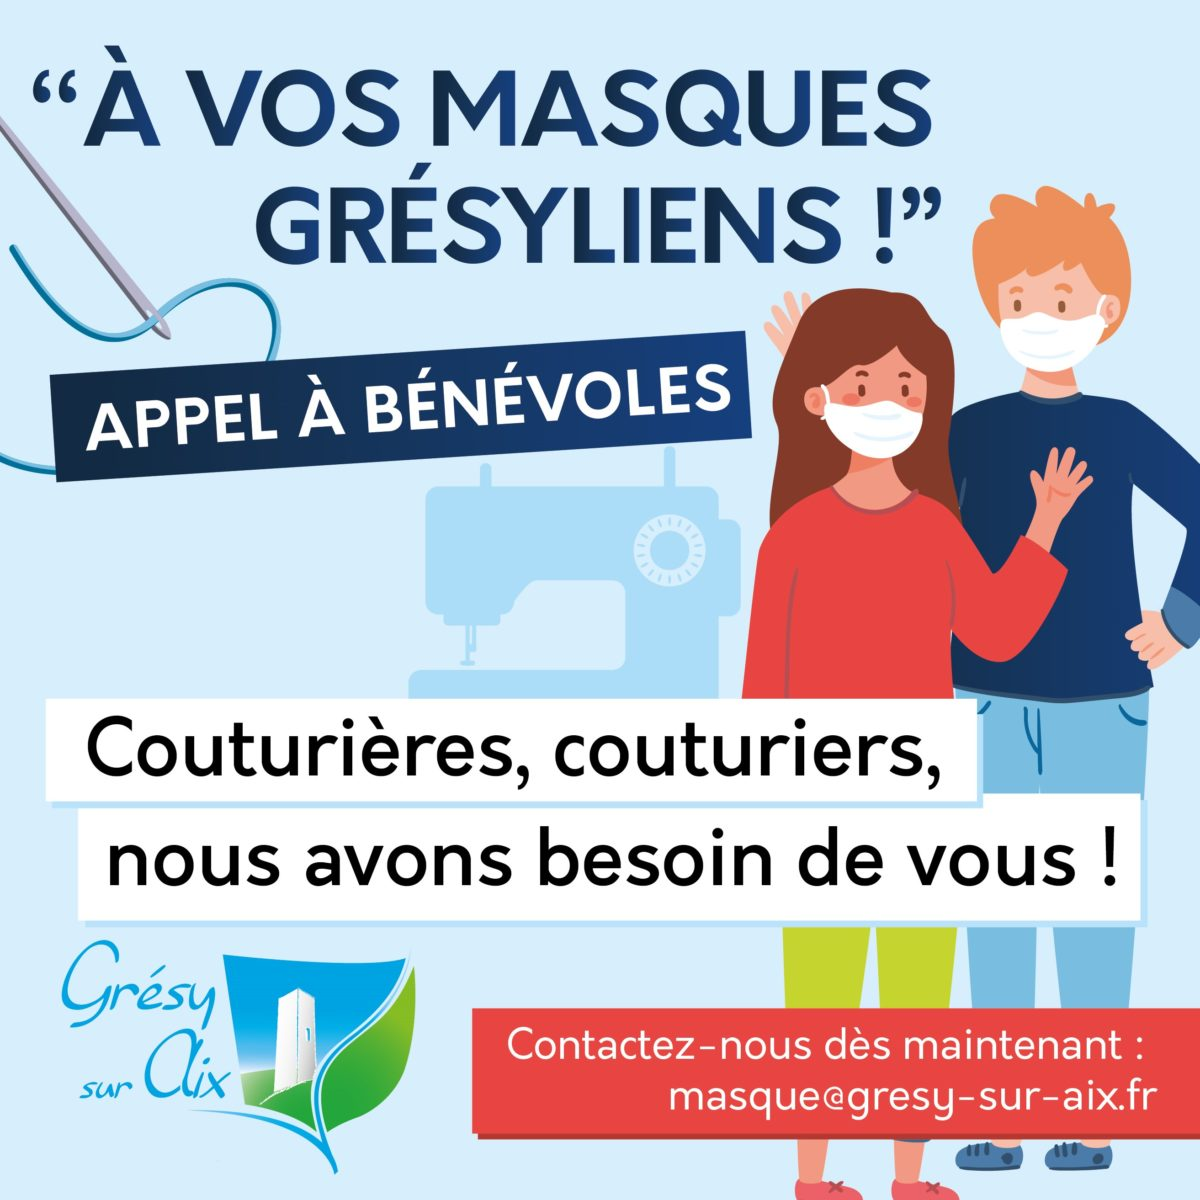 OPERATION « A VOS MASQUES GRESYLIENS ! »